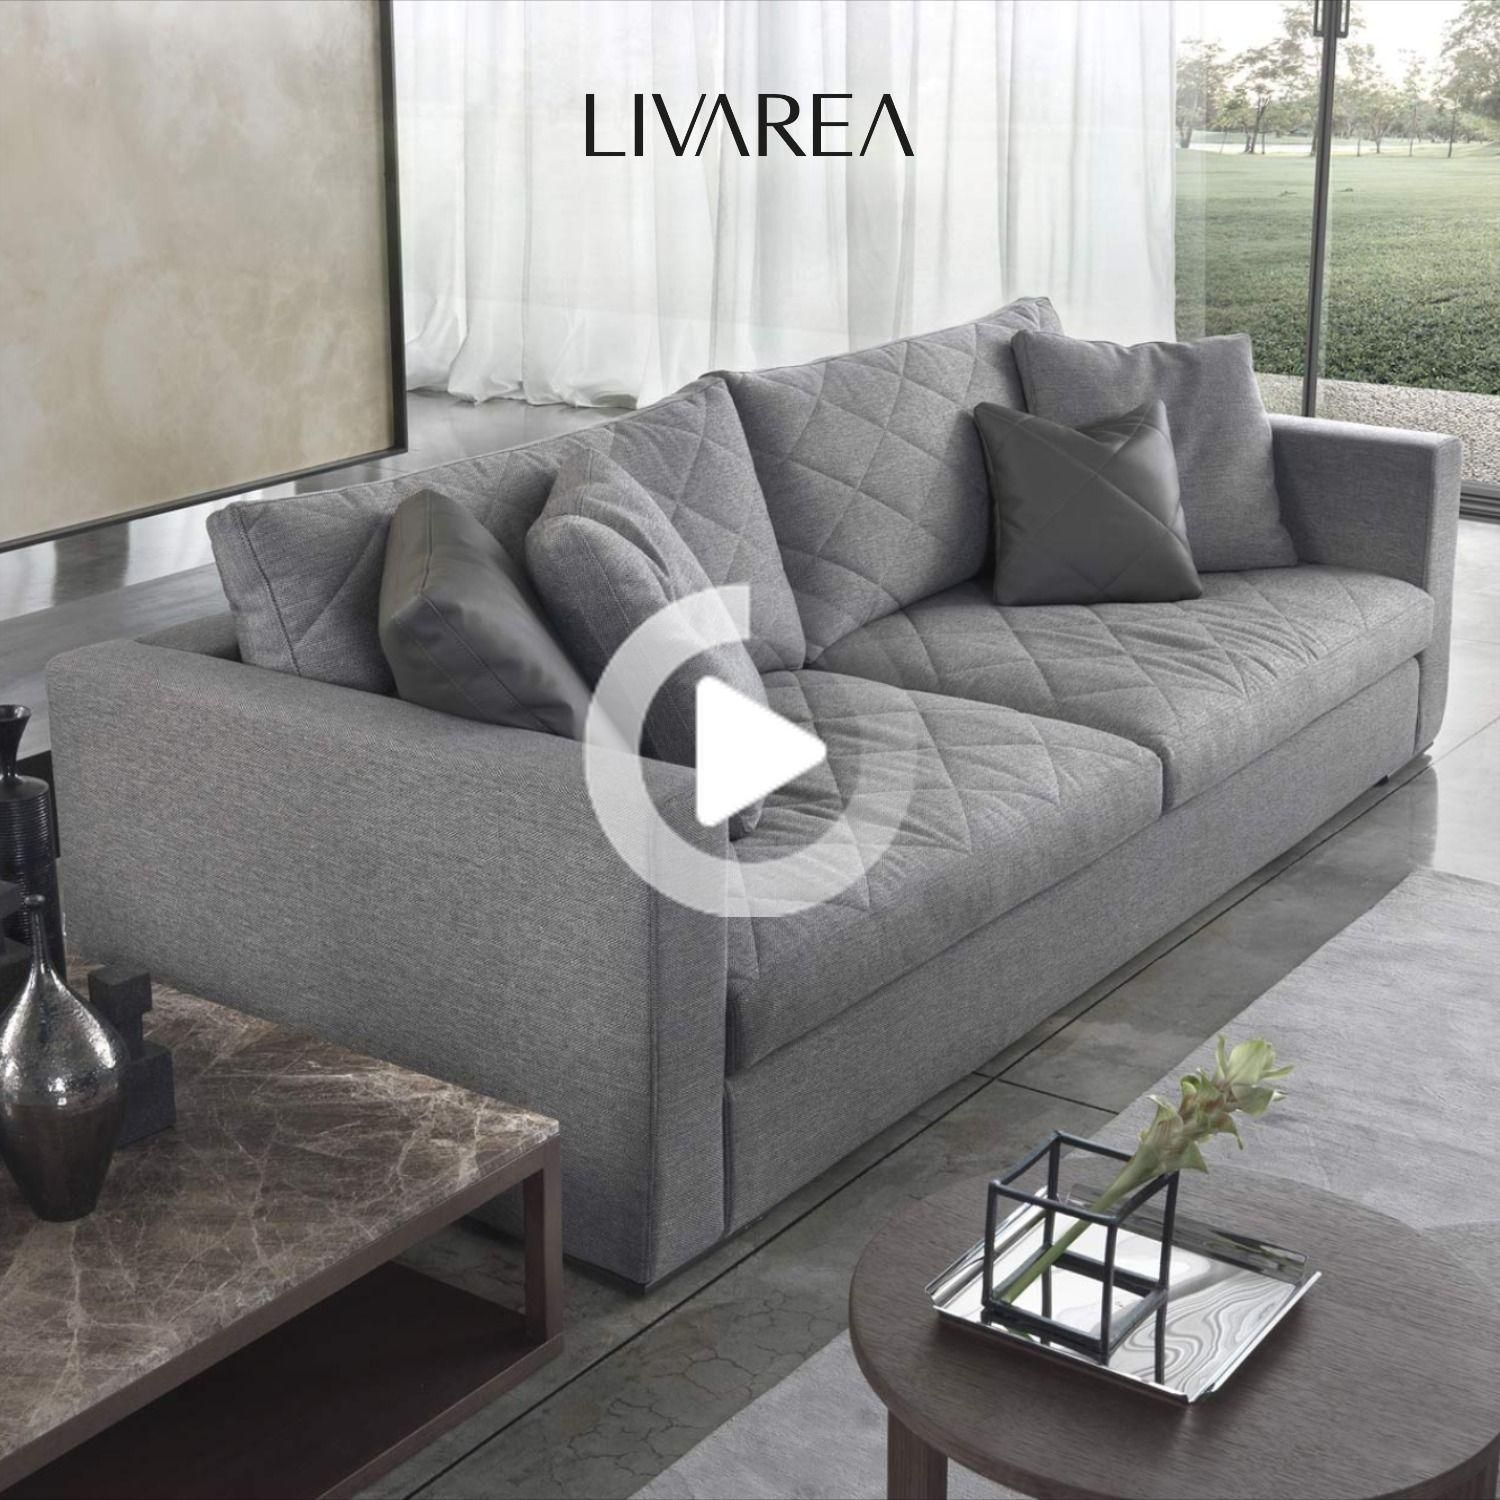 Hochwertiges Marelli Gordon Sofa in 8  Sofa design, Sofa